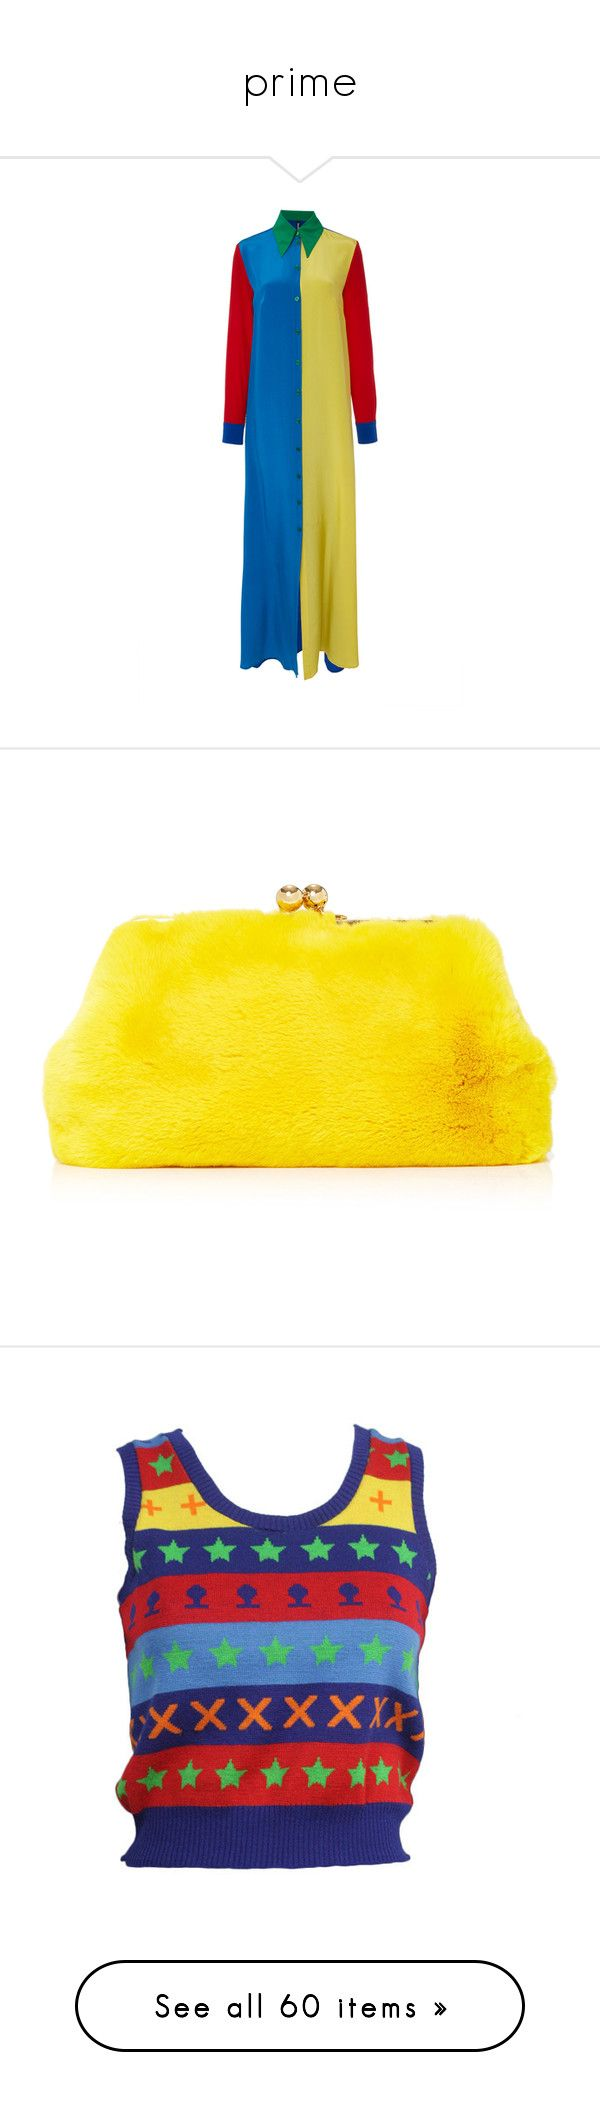 """prime"" by spa-brah ❤ liked on Polyvore featuring bags, handbags, clutches, fur, navy, navy blue handbags, yellow purse, kiss lock purse, kiss clasp handbags and yellow handbags"